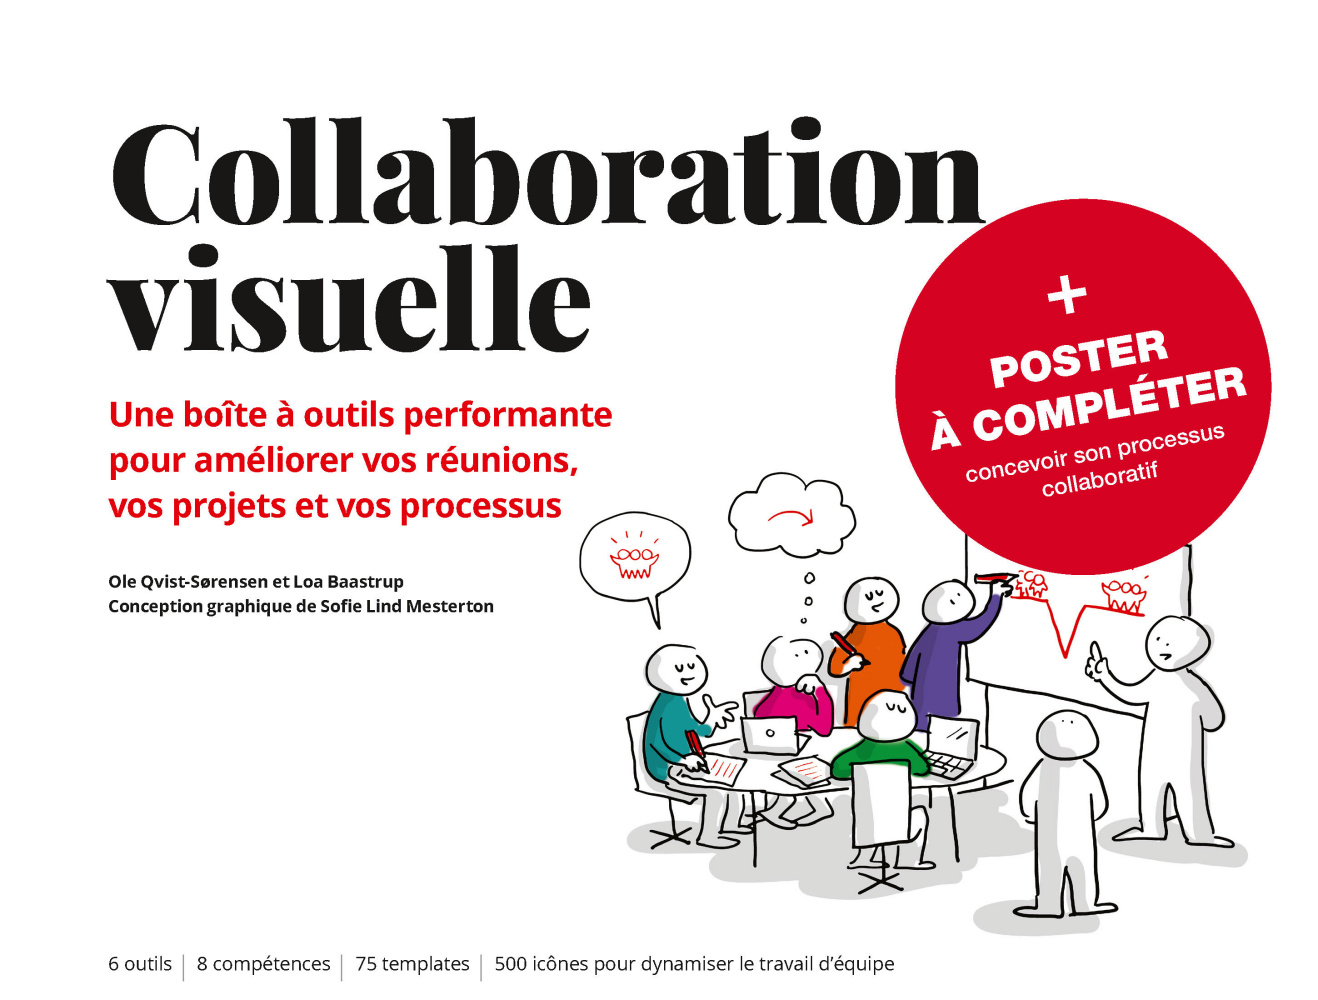 Collaboration visuelle + Poster